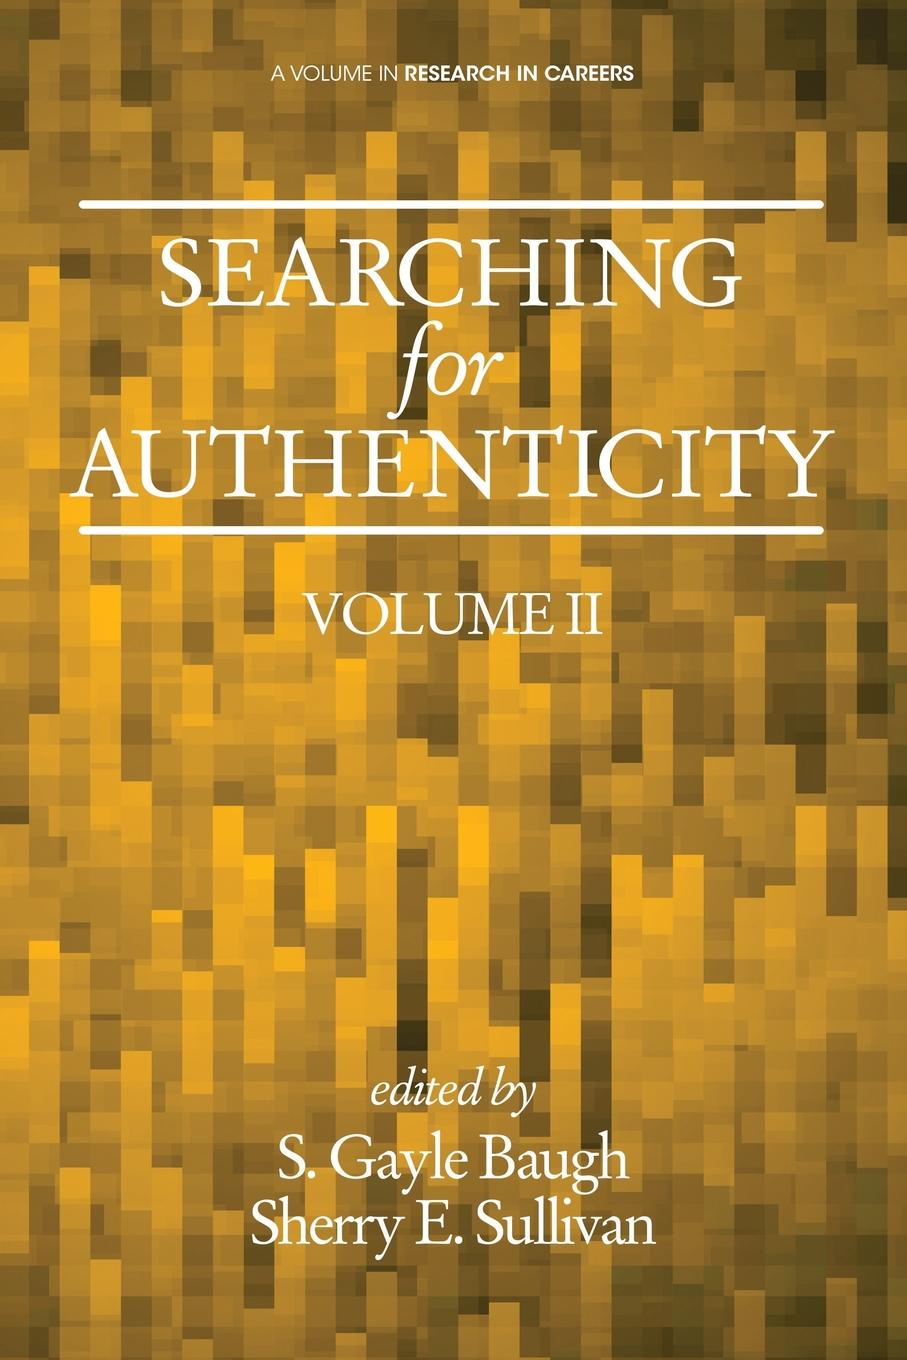 Фото - Searching for Authenticity karissa thacker the art of authenticity tools to become an authentic leader and your best self